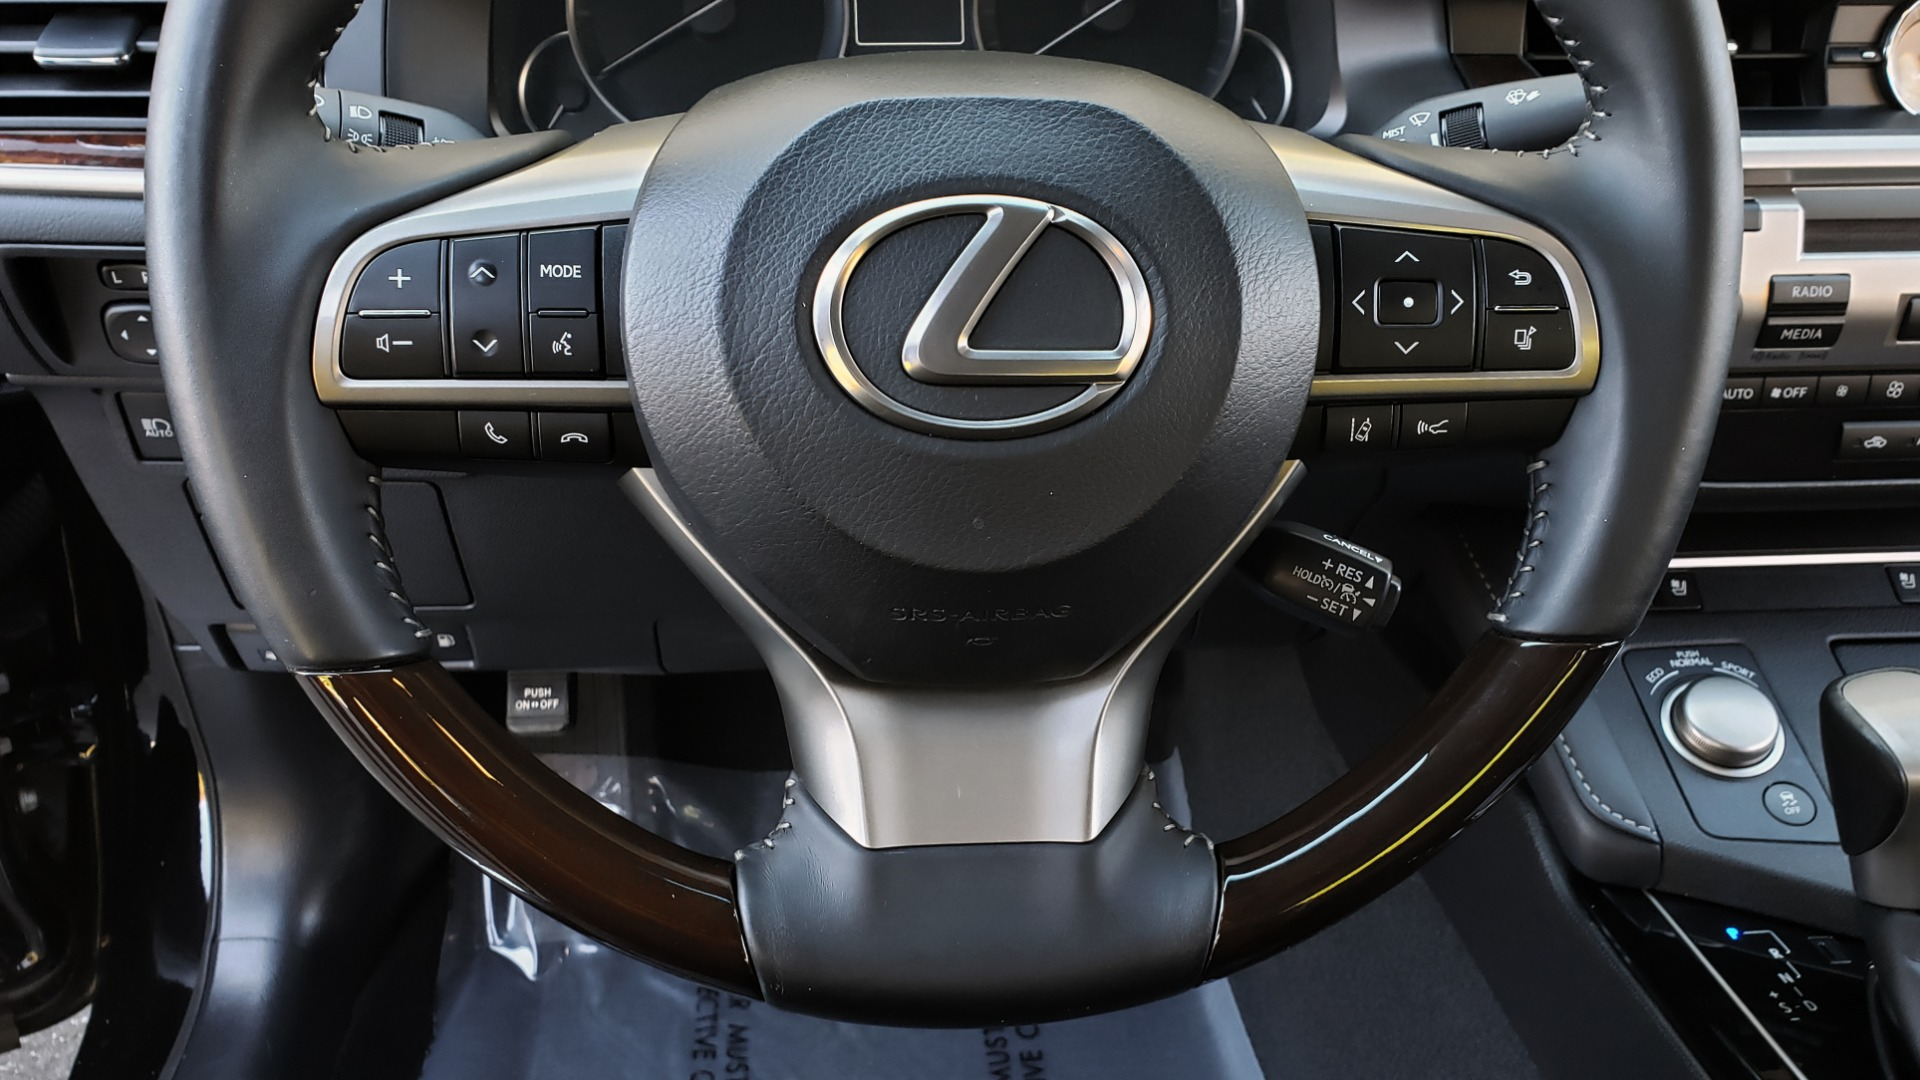 Used 2017 Lexus ES 350 PREMIUM / NAV / SUNROOF / BSM / VENT STS / REARVIEW for sale $24,795 at Formula Imports in Charlotte NC 28227 33